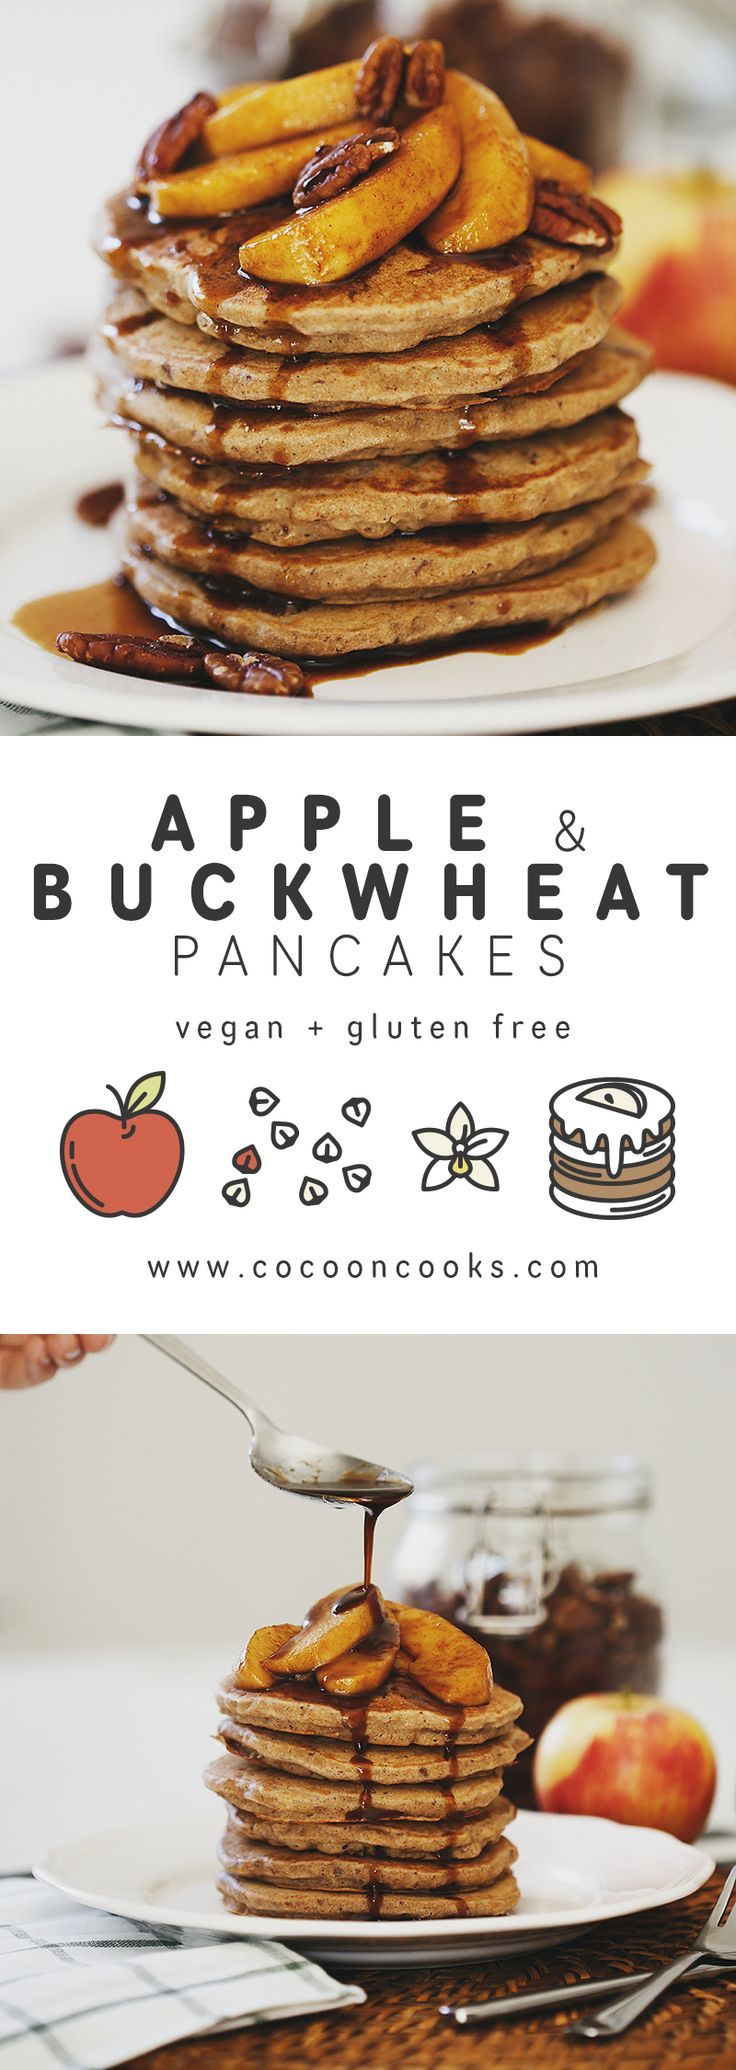 Healthy Vegan Apple Buckwheat Pancakes with Coconut Caramel Apples. #recipe #blog #healthy #easy